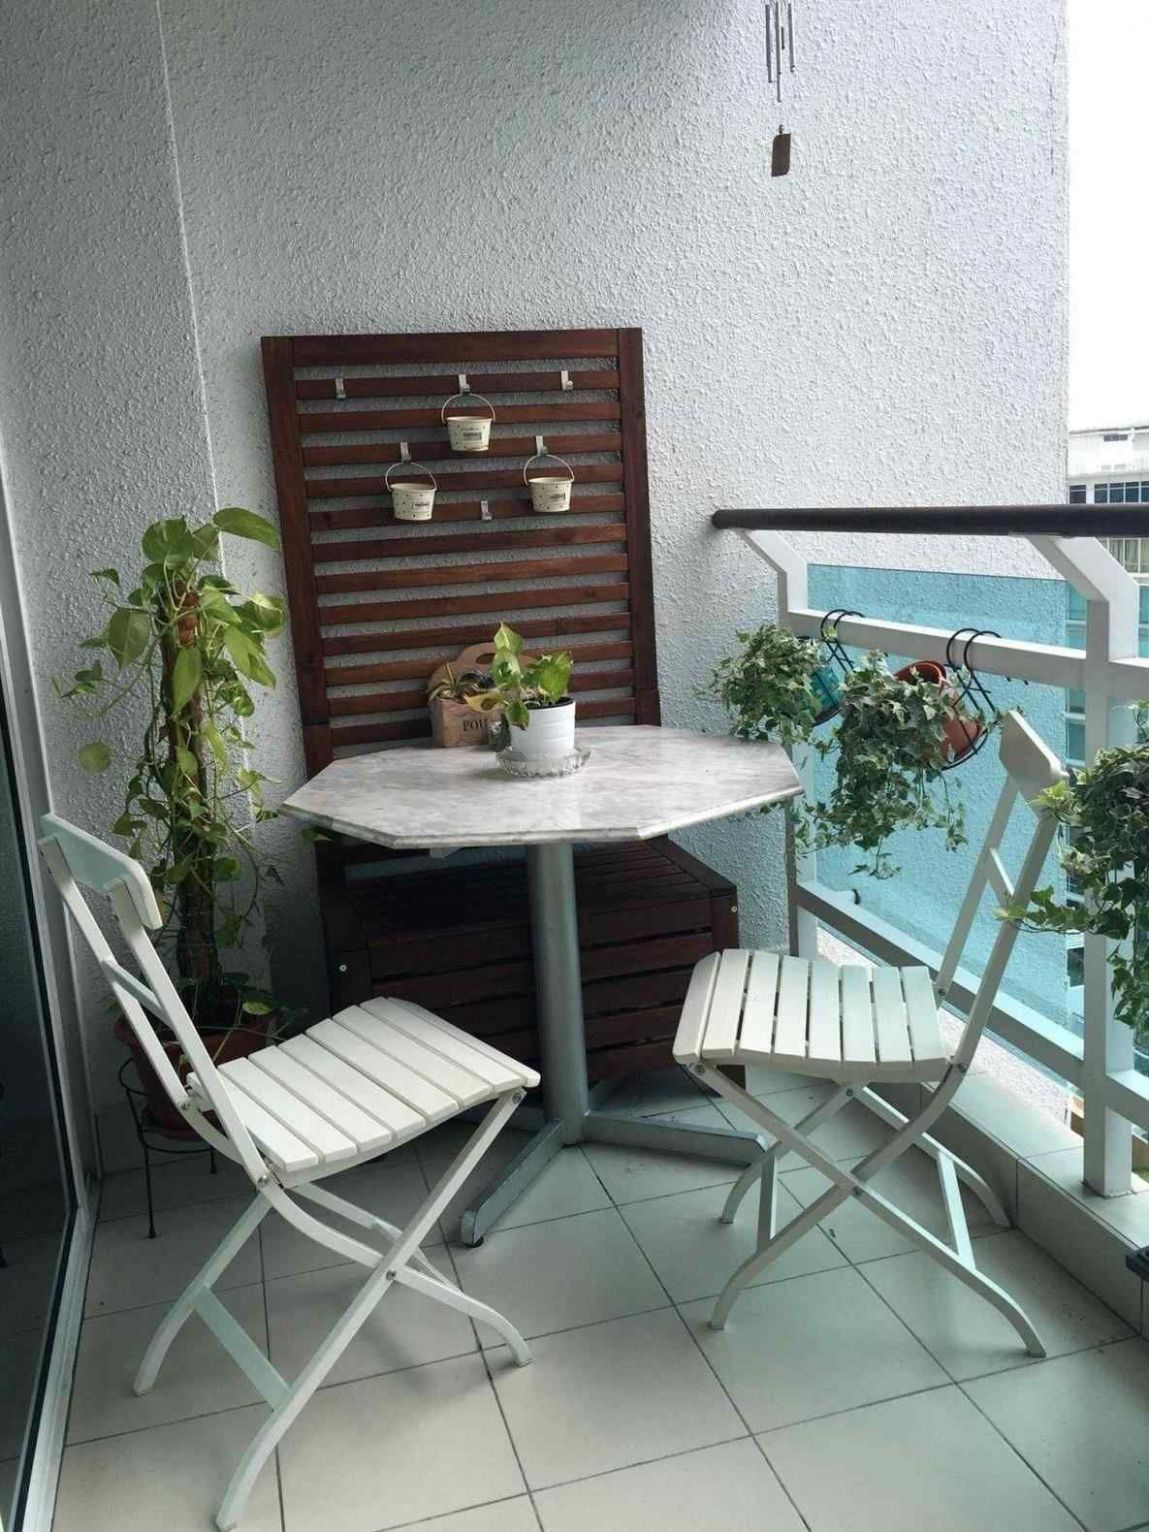 12 Awesome Balcony Bench Ideas For Cozy Seating Area | Outdoor ...